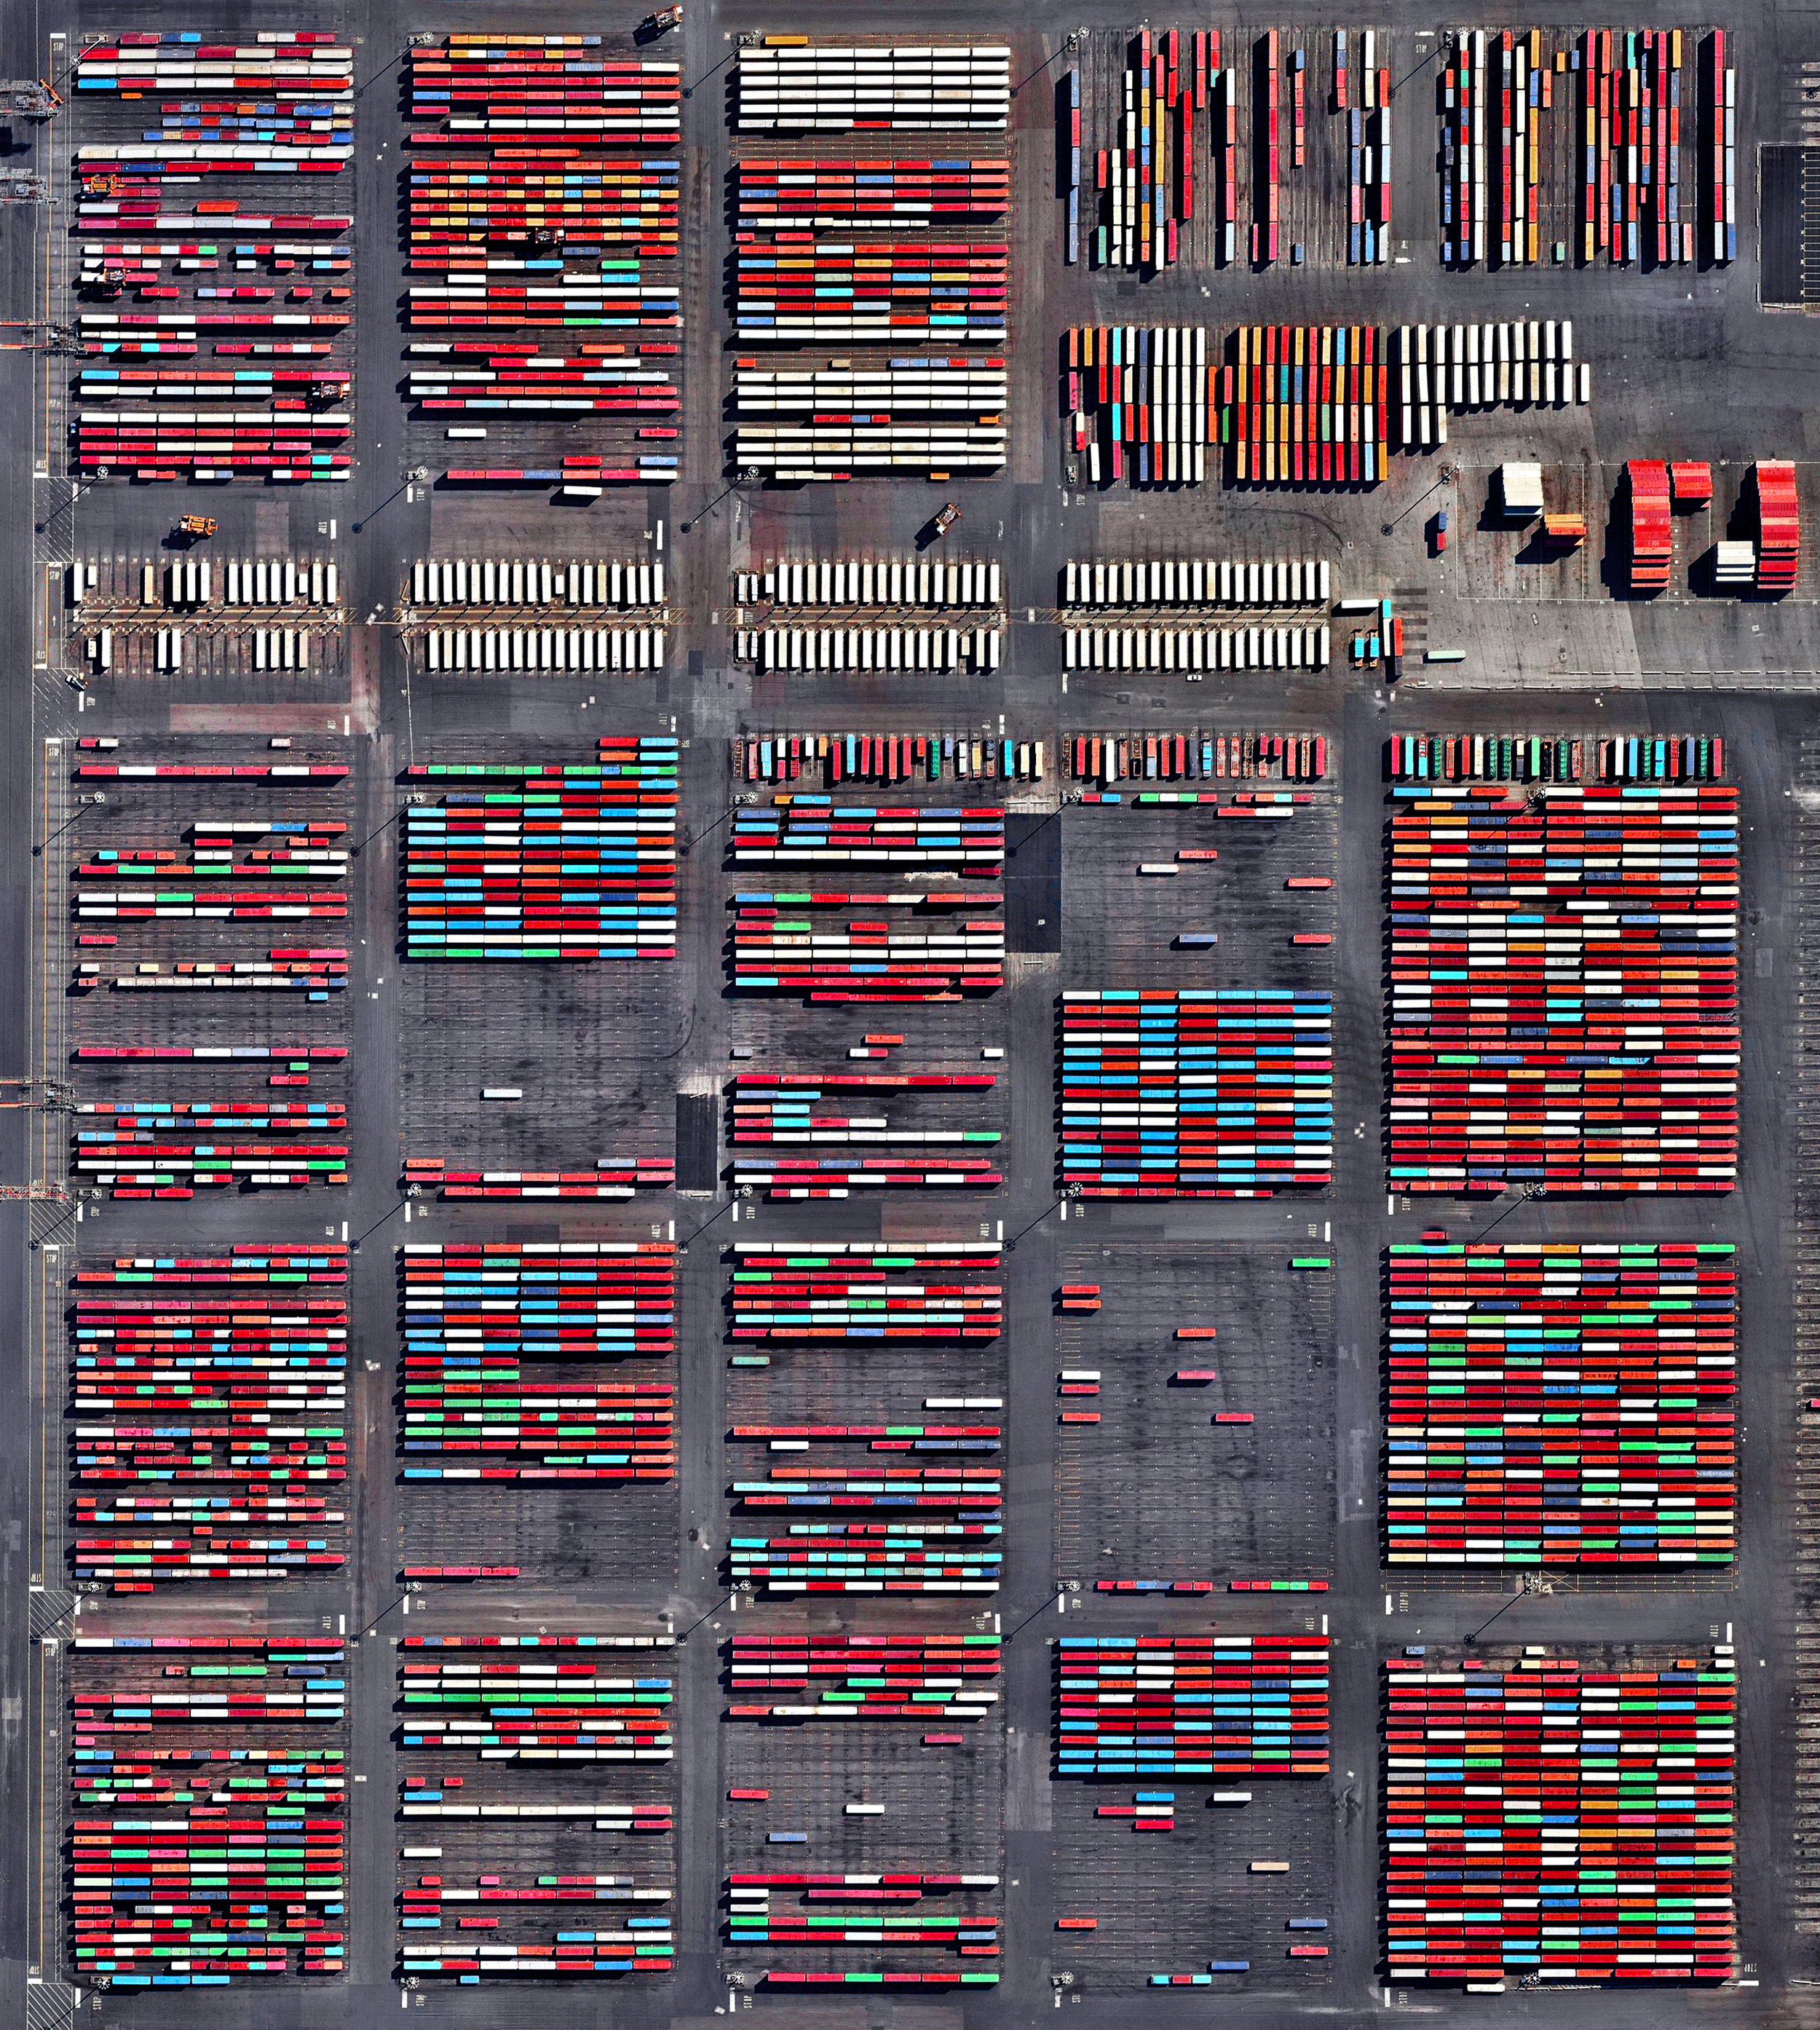 9/27/2016   Port Newark   Newark, New Jersey  40°40′54″N 74°09′02″W    Shipping containers are stacked at the Port Newark Container Terminal in Newark, New Jersey, USA. The massive facility handles over 600,000 shipping containers every year and has begun expansion projects that will increase annual capacity to 1.1 million containers by 2030.